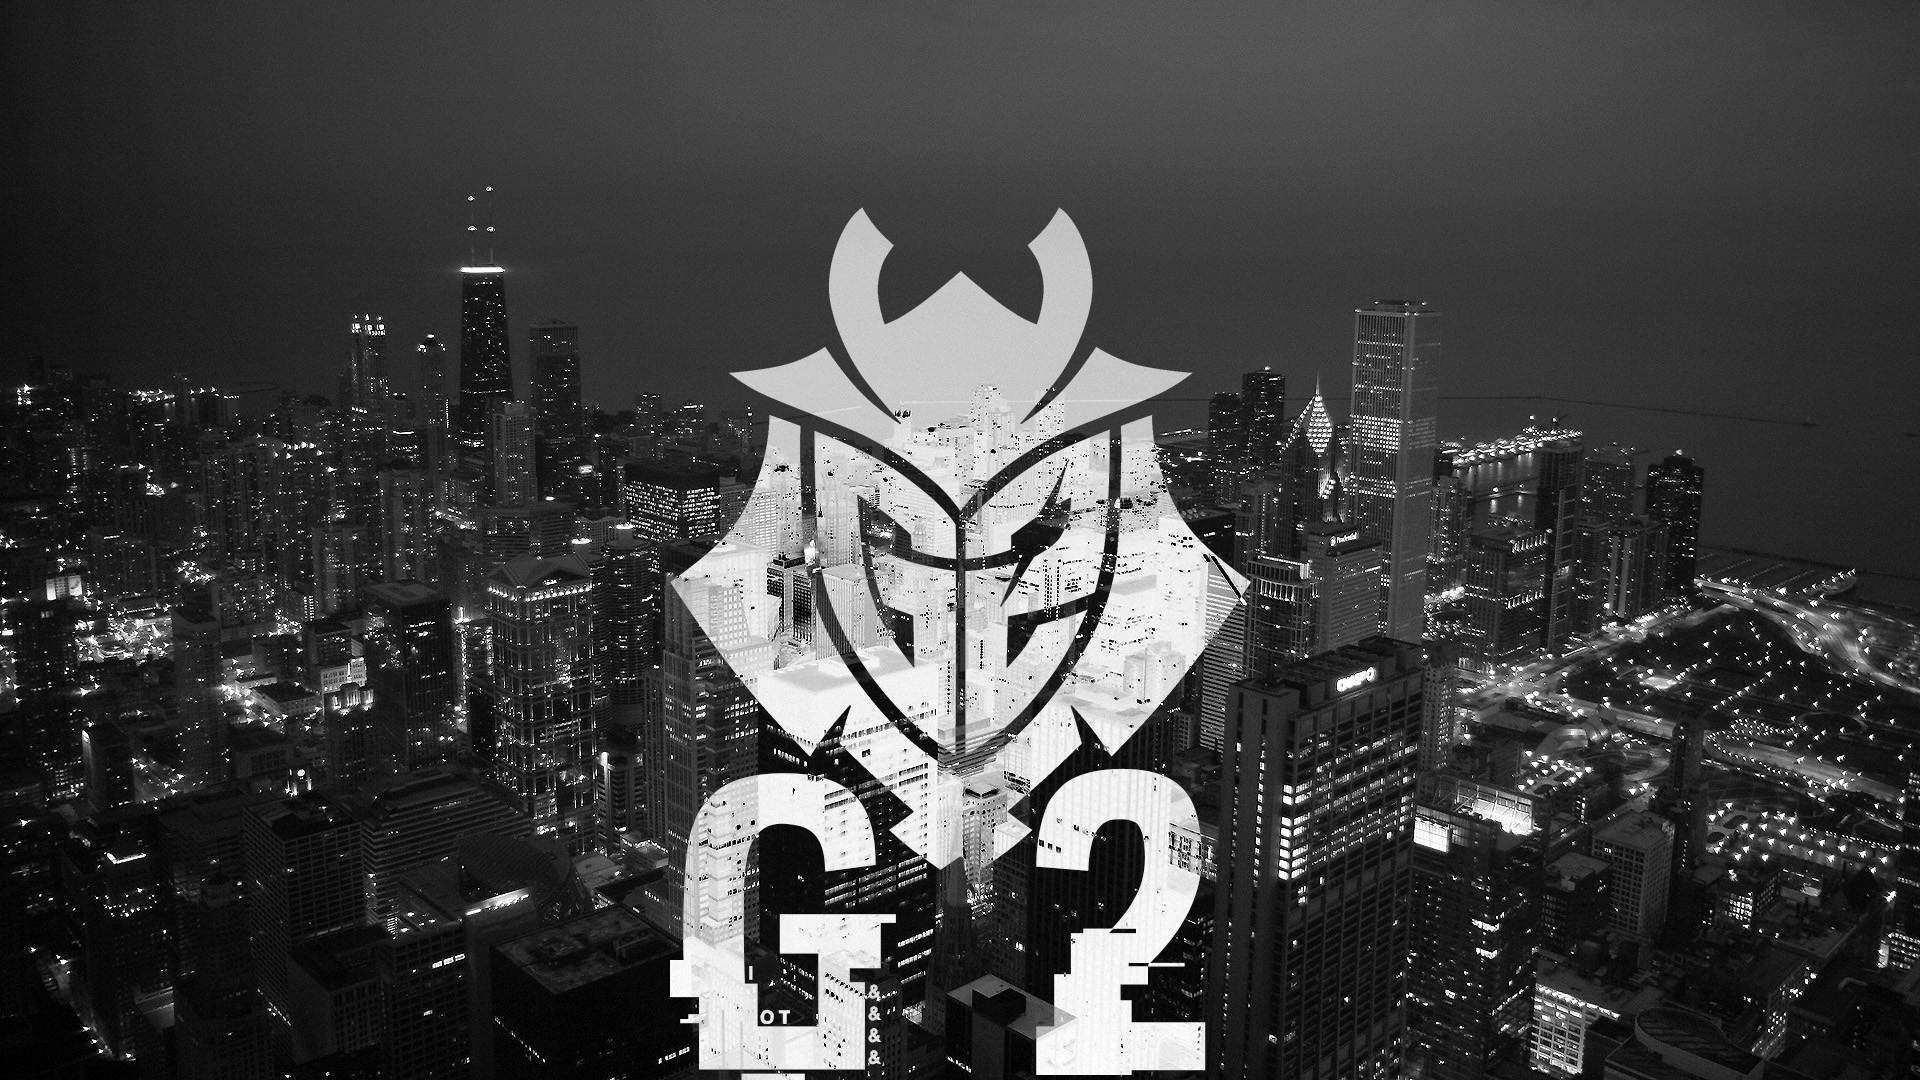 G2 Night City